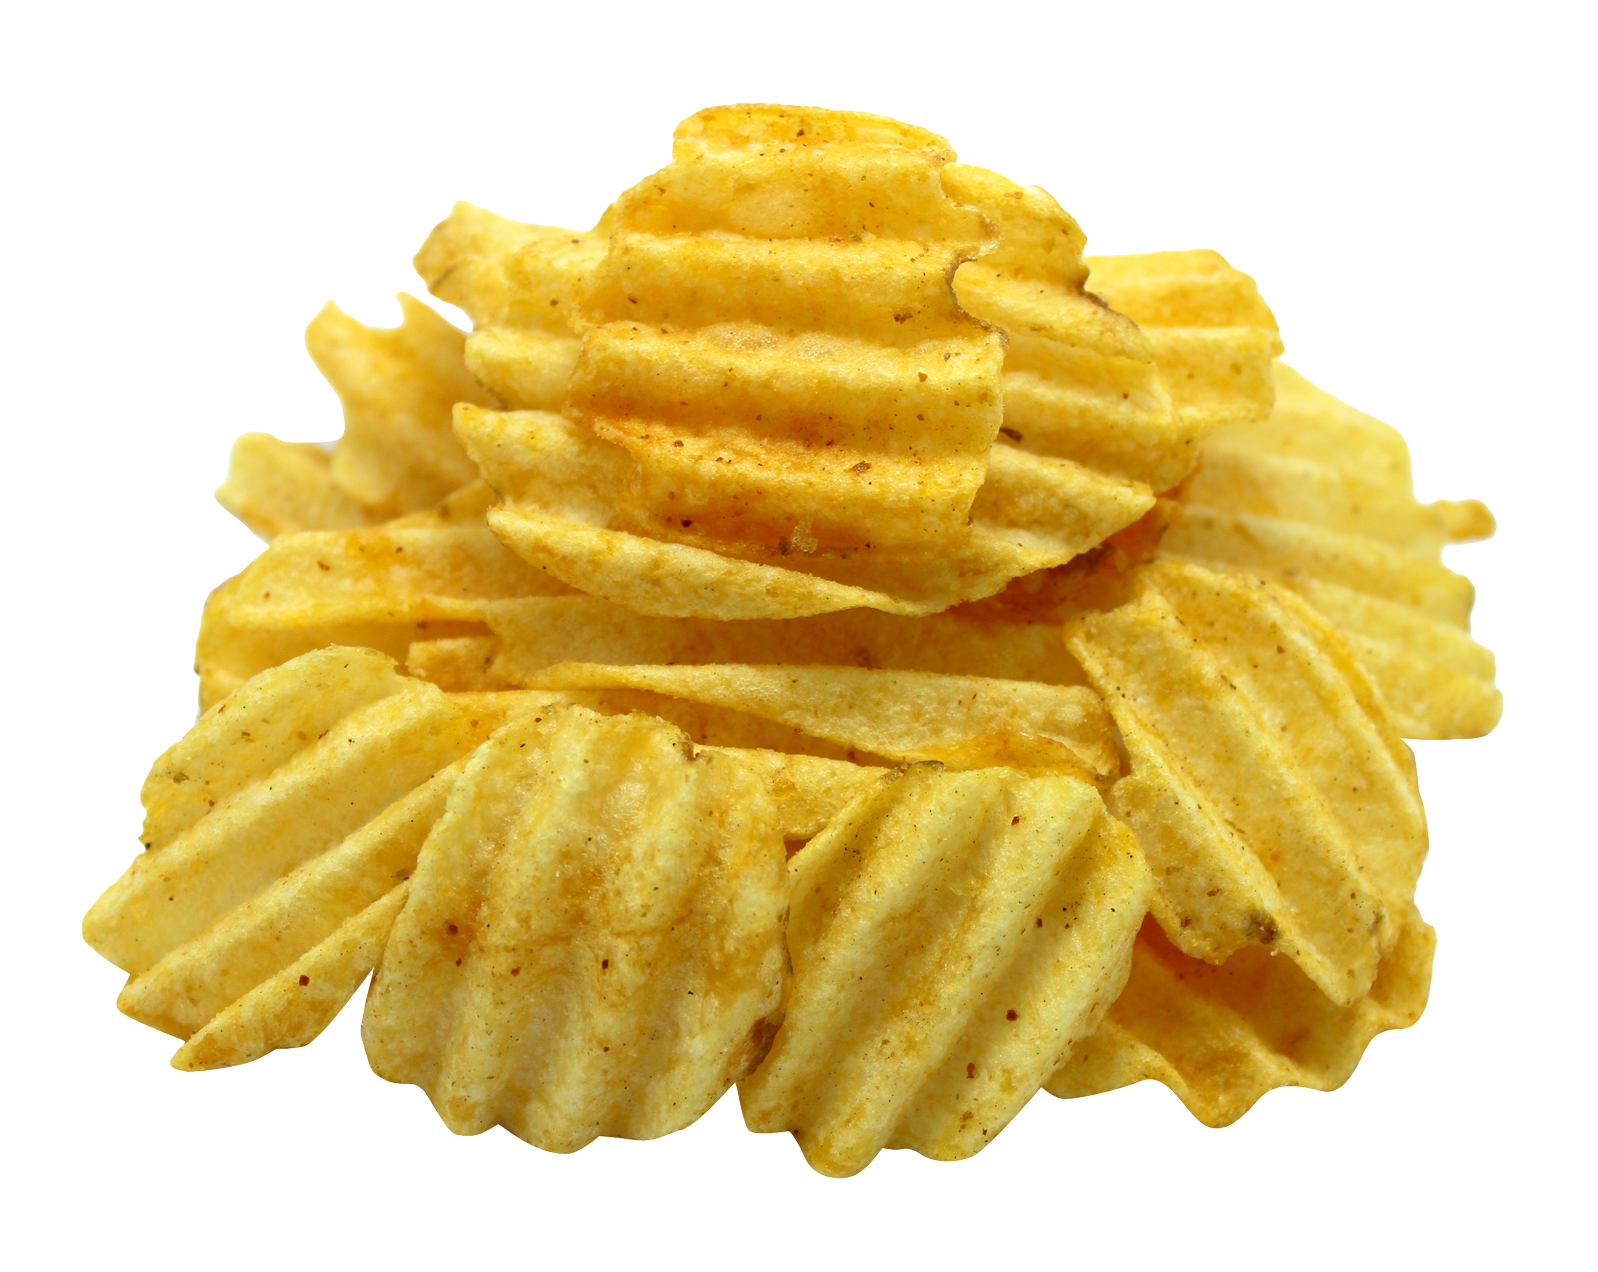 Potato chips png image. Eat clipart food taste